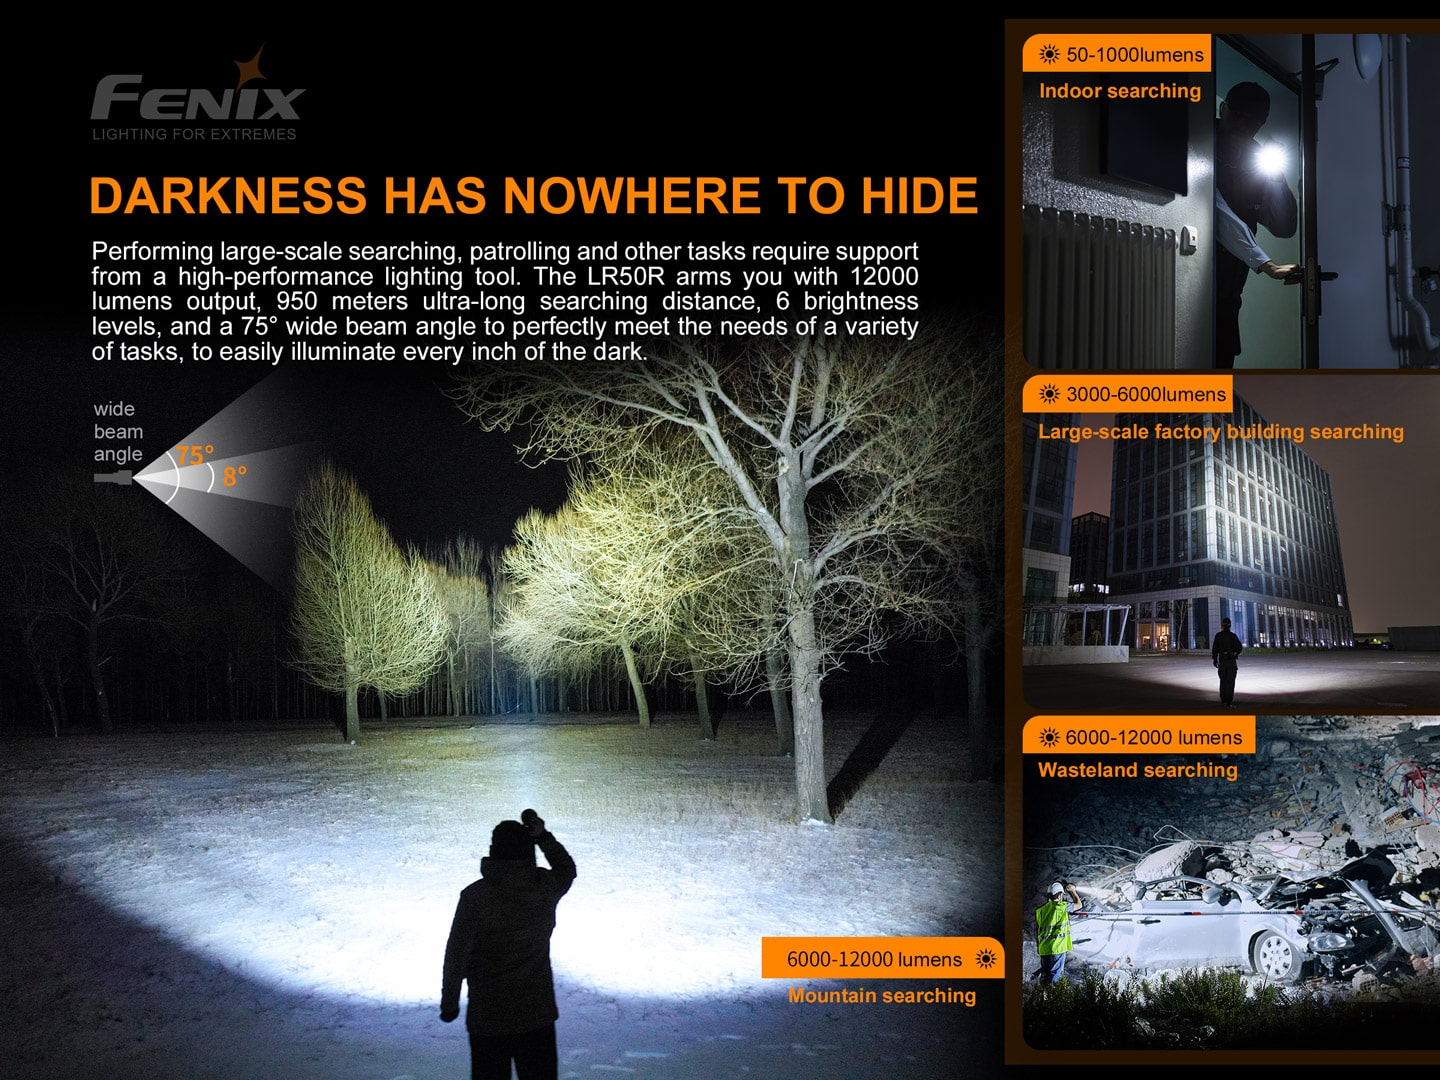 Fenix LR50R Searchlight in India, 12000 Lumens 950m rechargeable Torchlight, extremely powerful Long-Range light